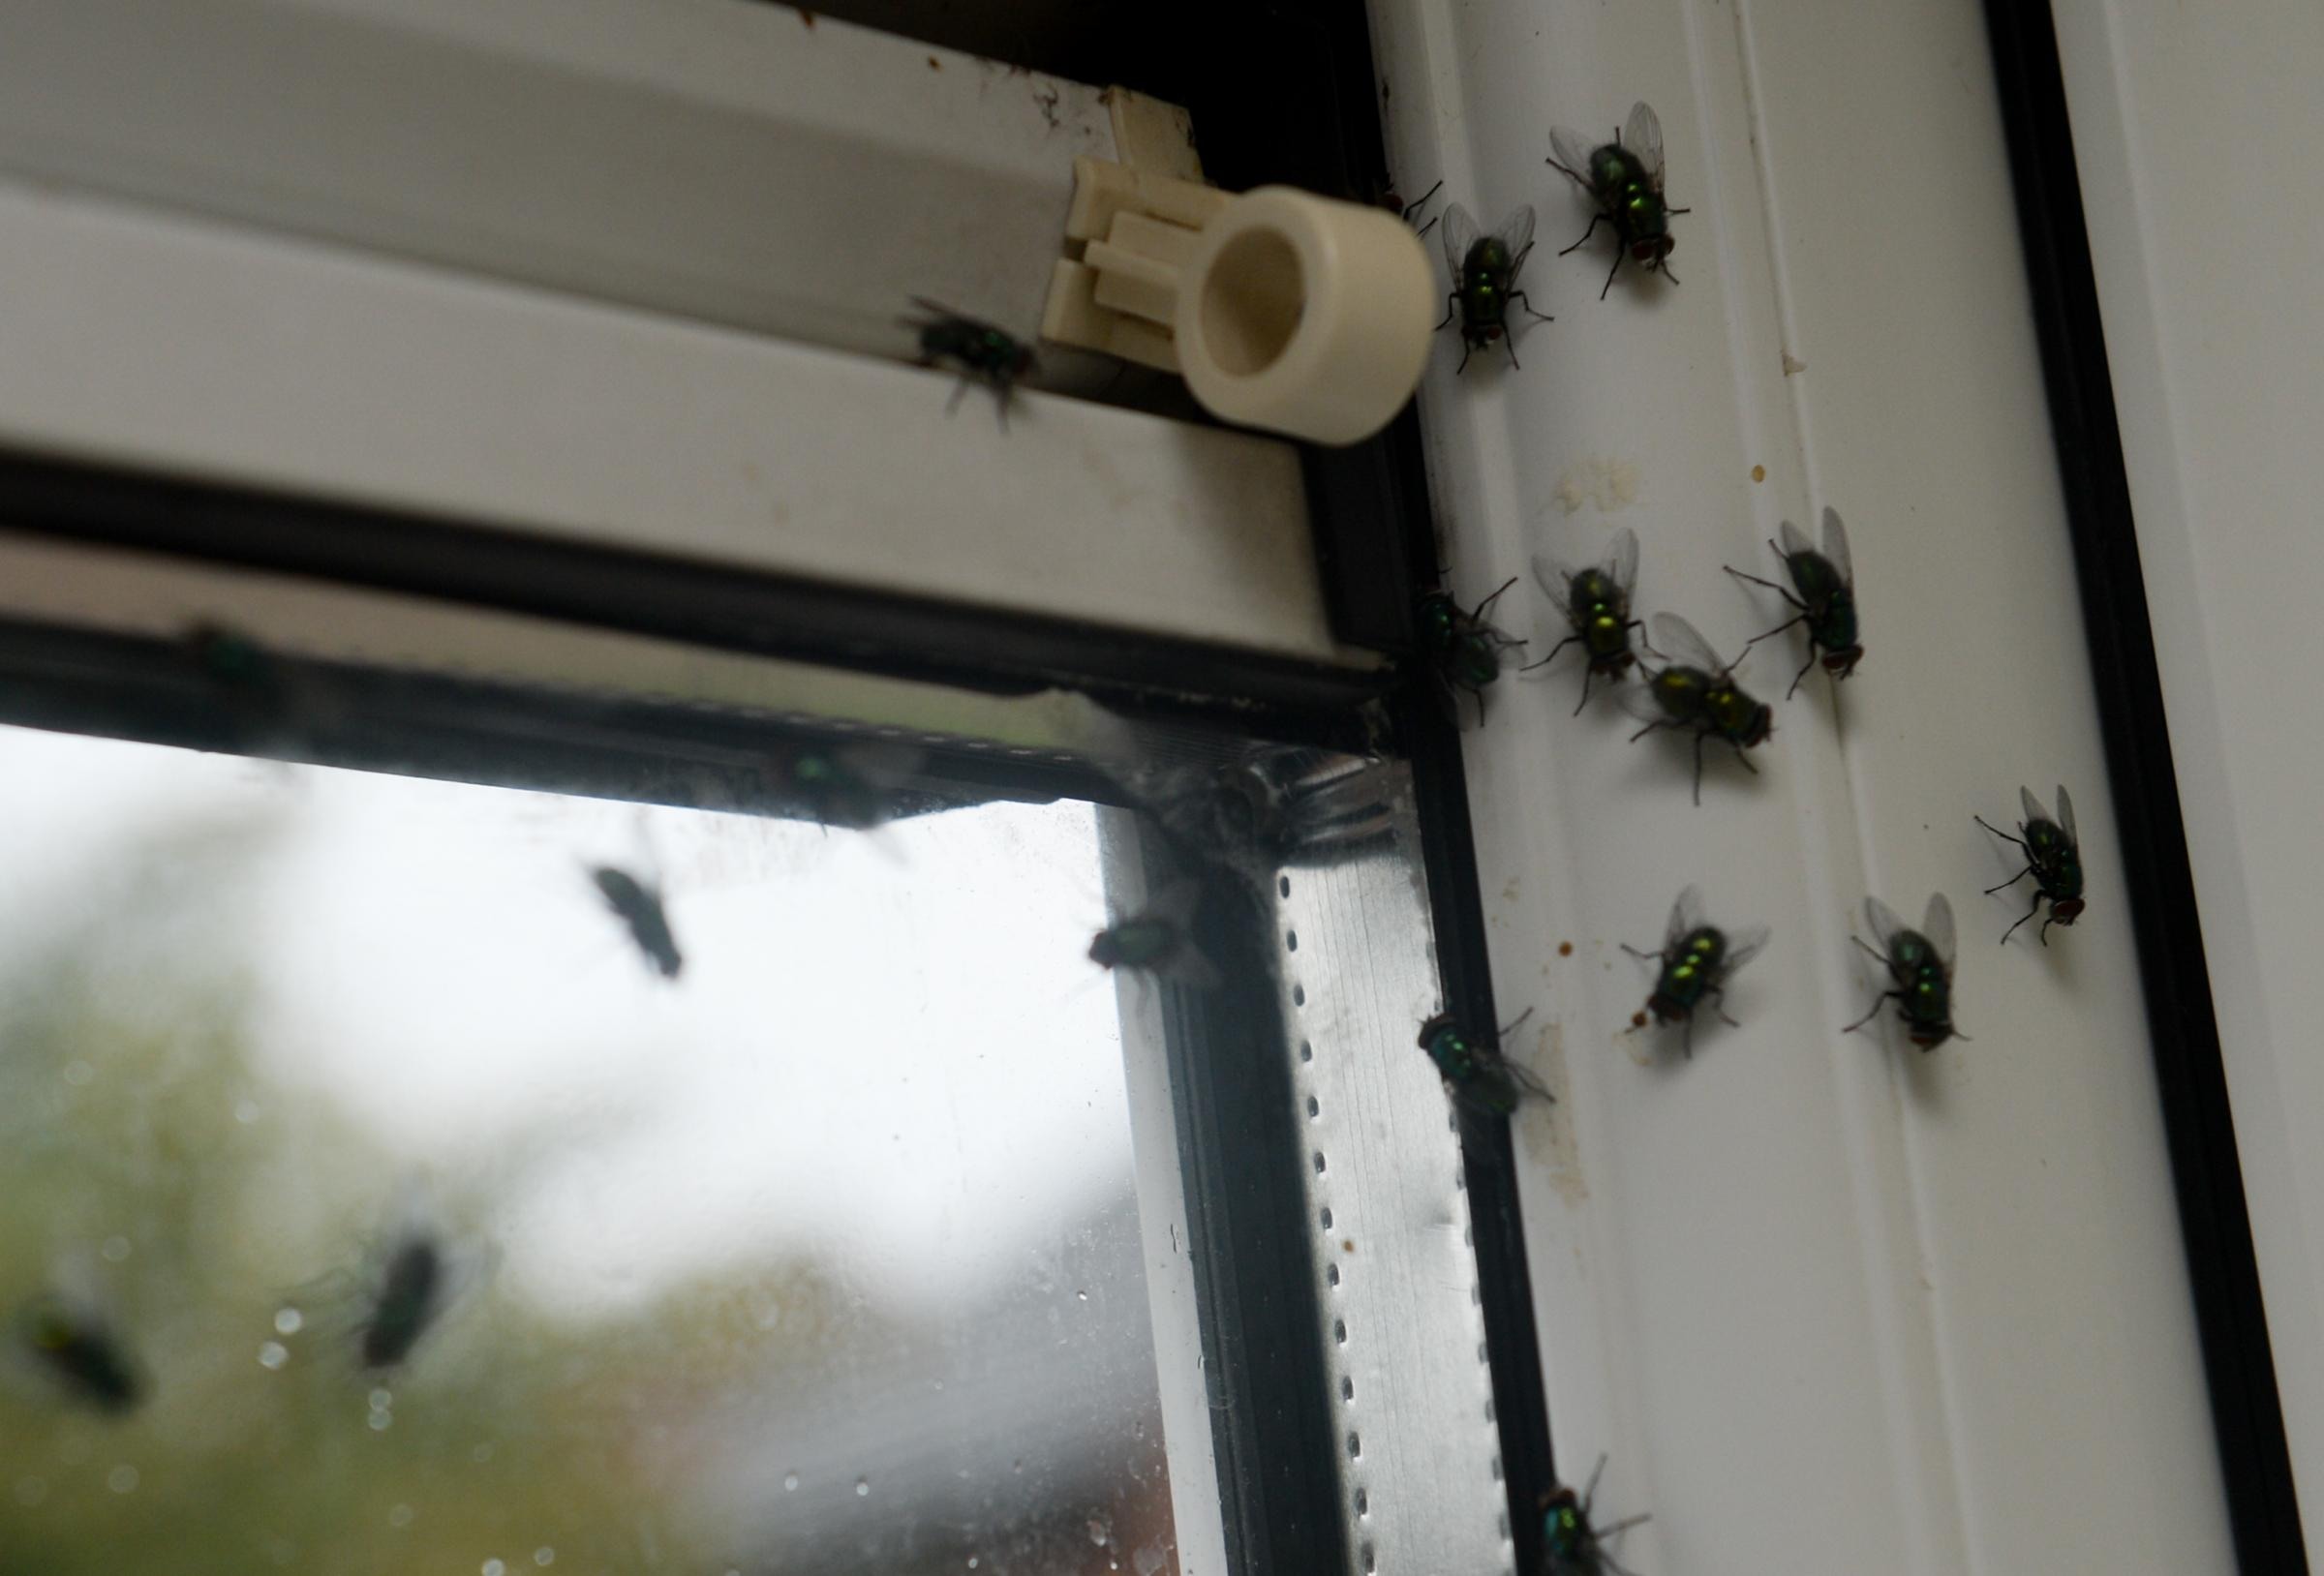 Flies were found in a number of homes across East Renfrewshire